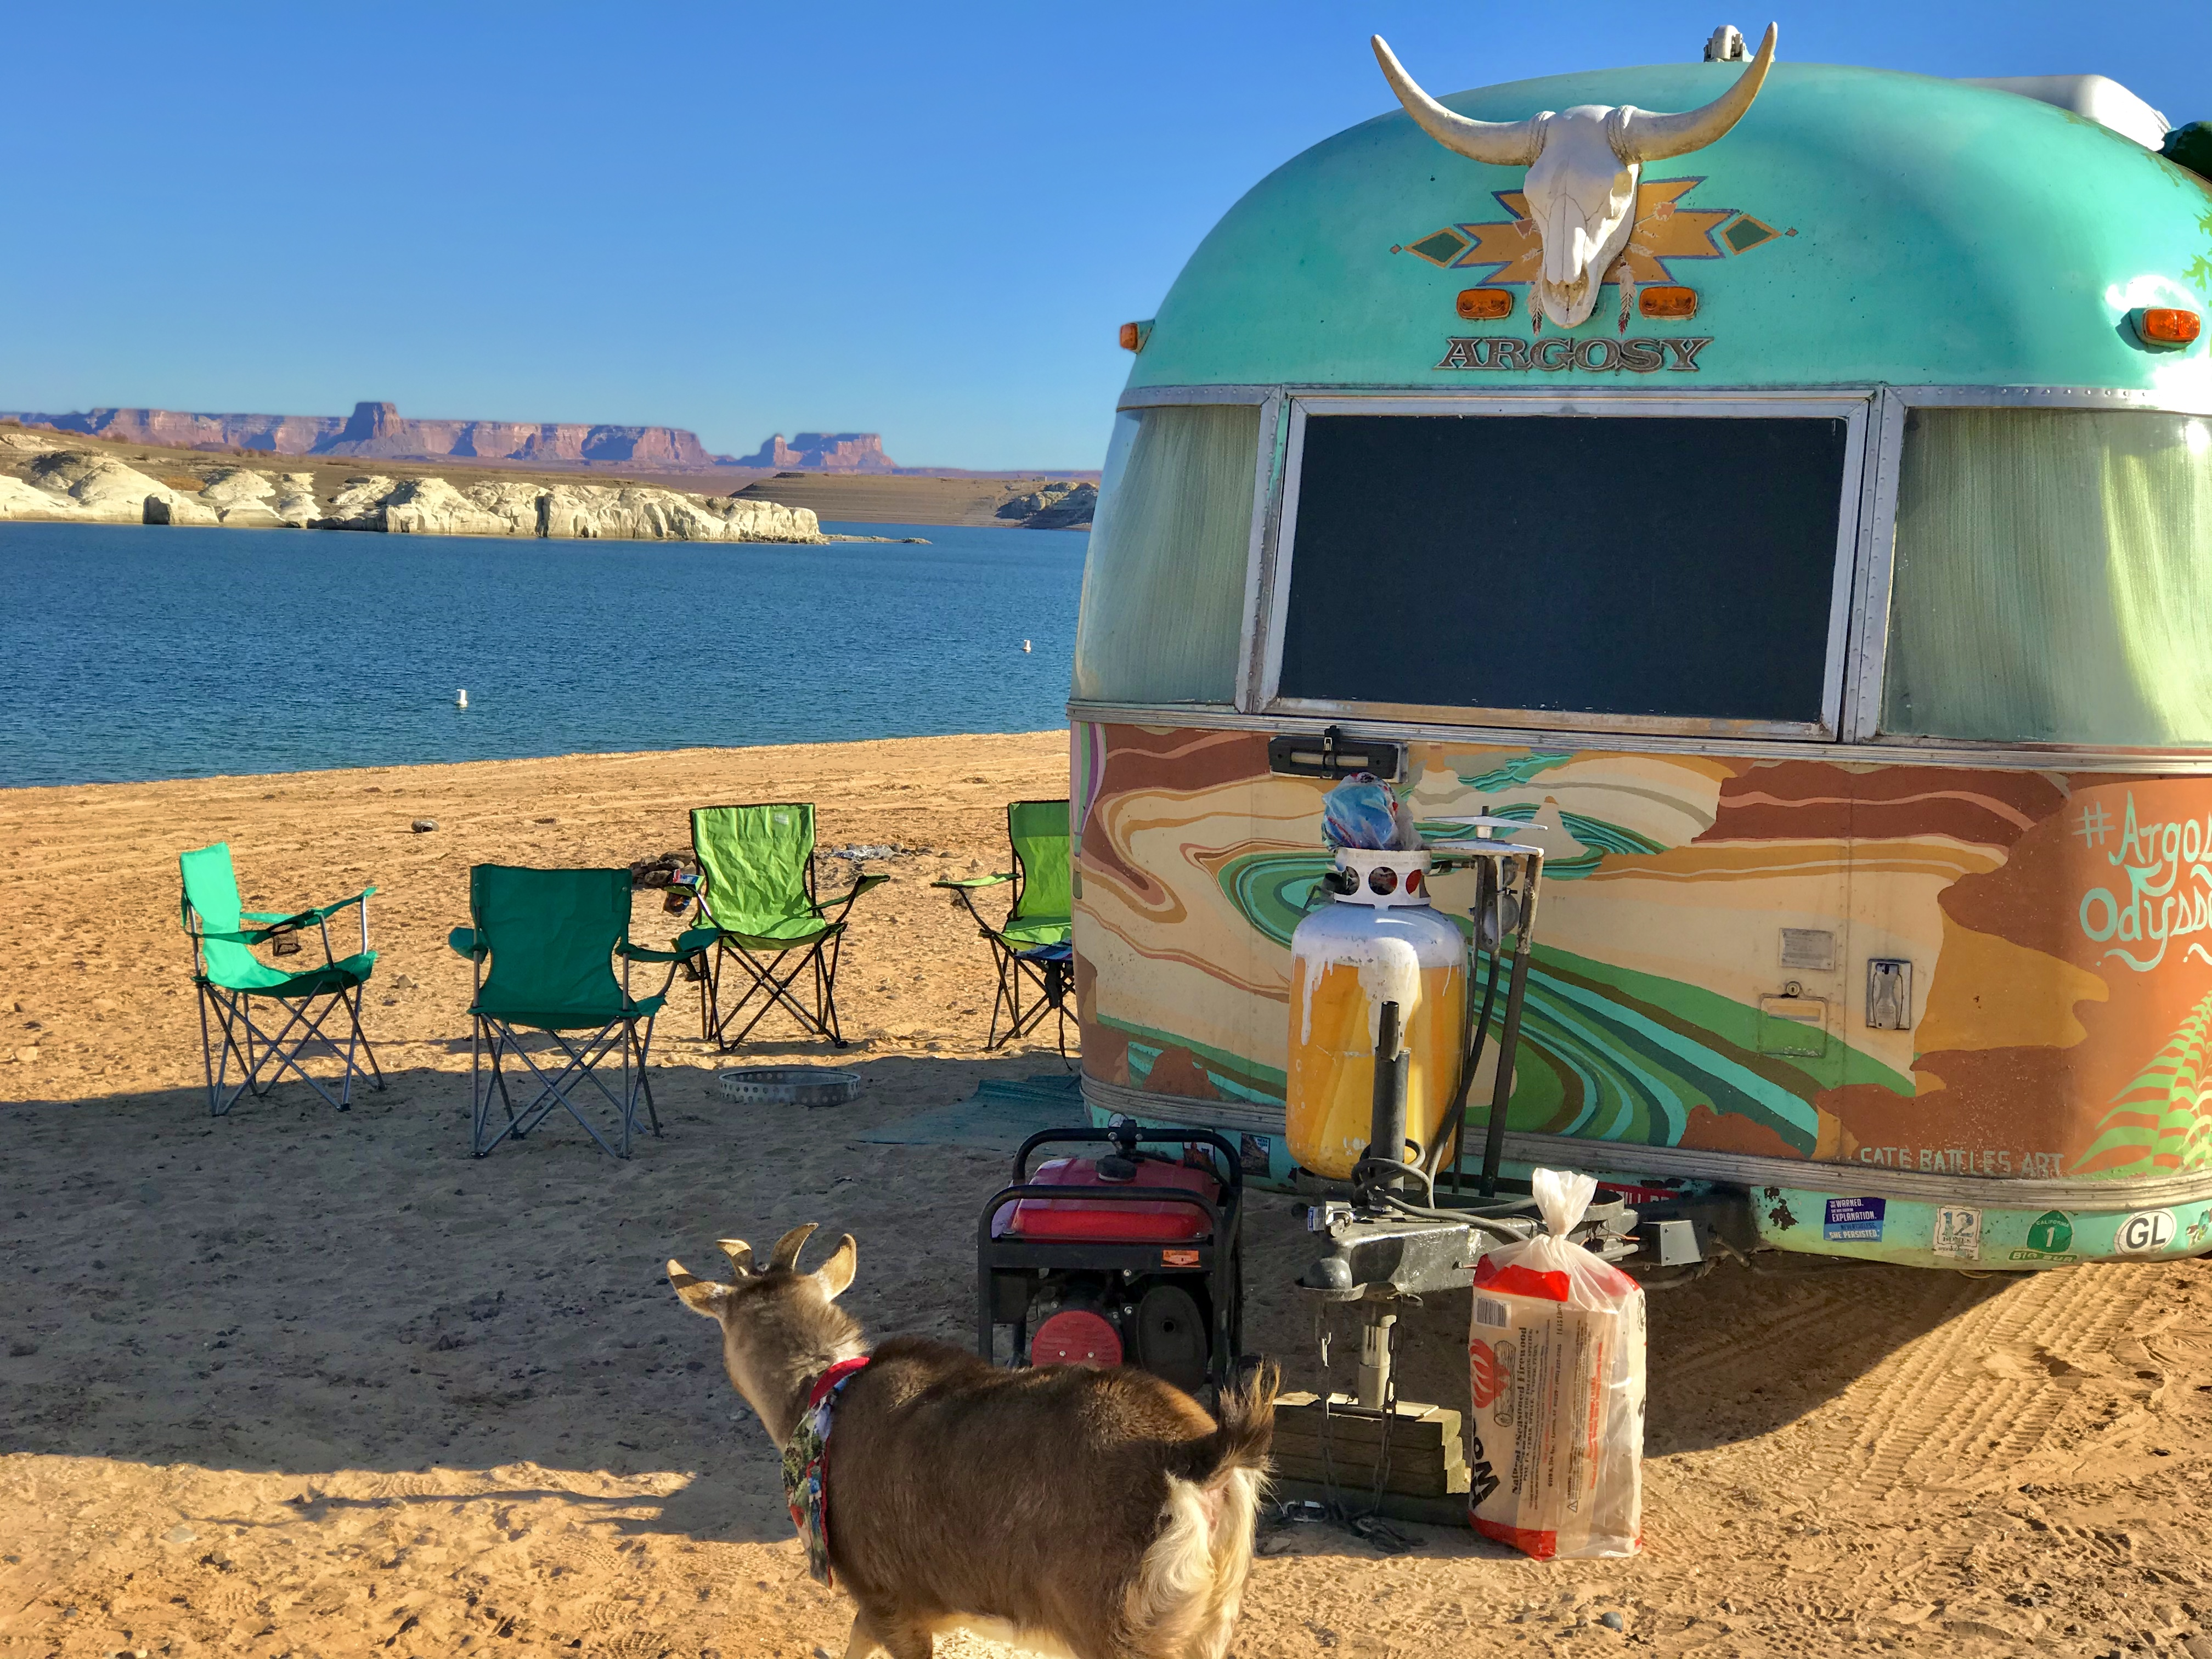 A goat in front of a colorfully painted Airstream near a lake.